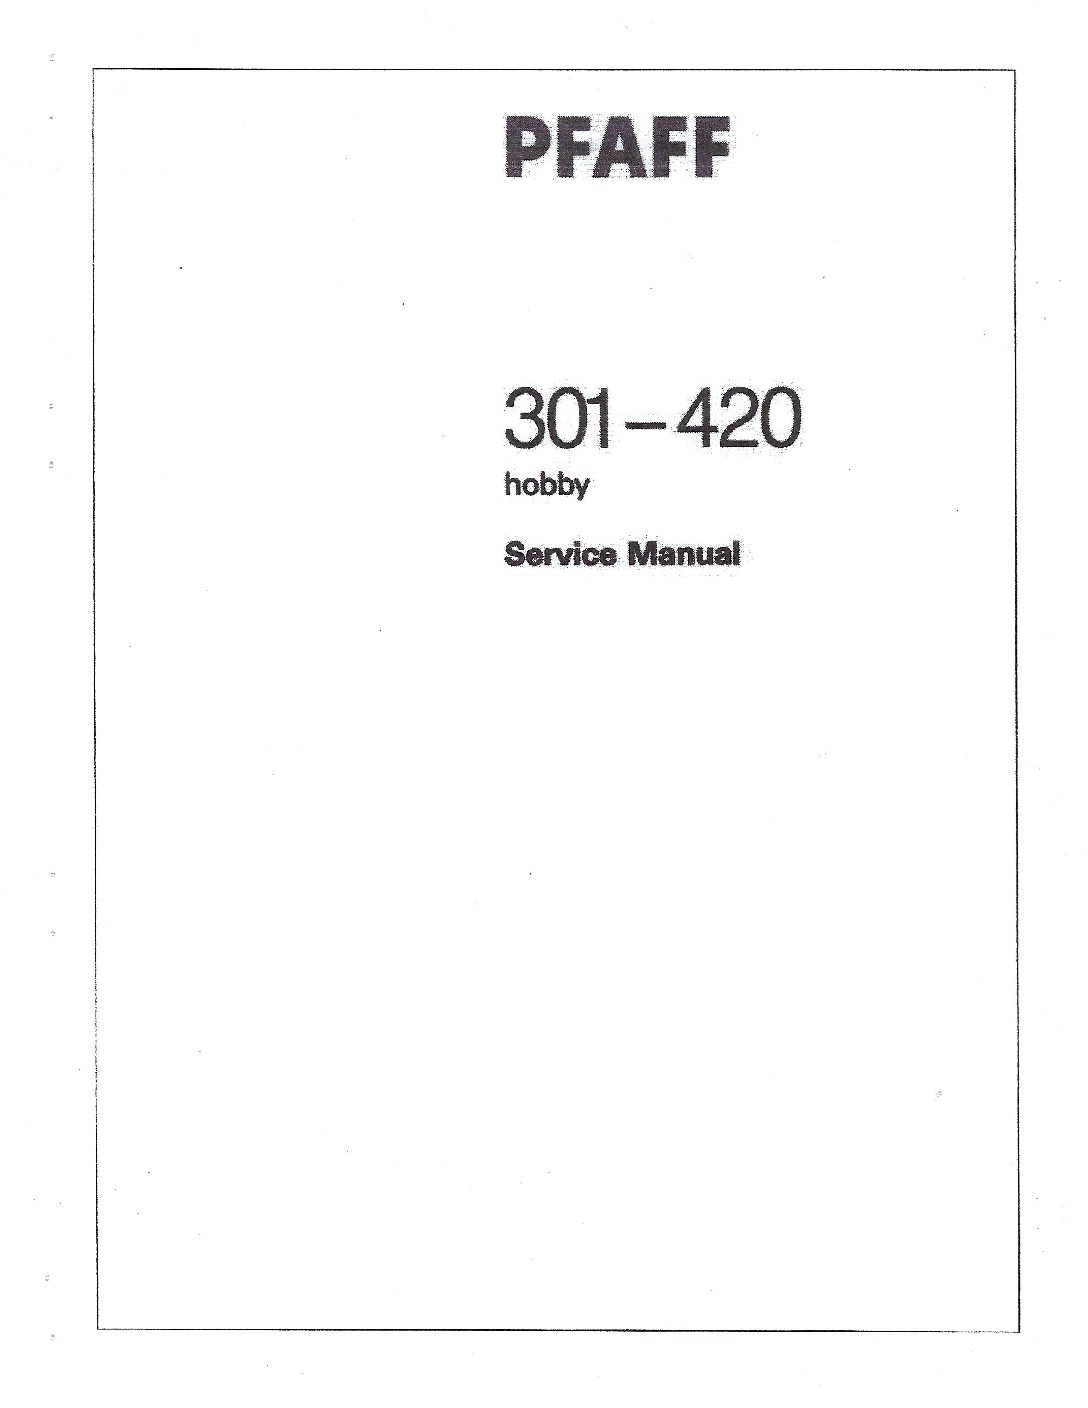 Service Manual Pfaff 301, 420 Sewing Machine